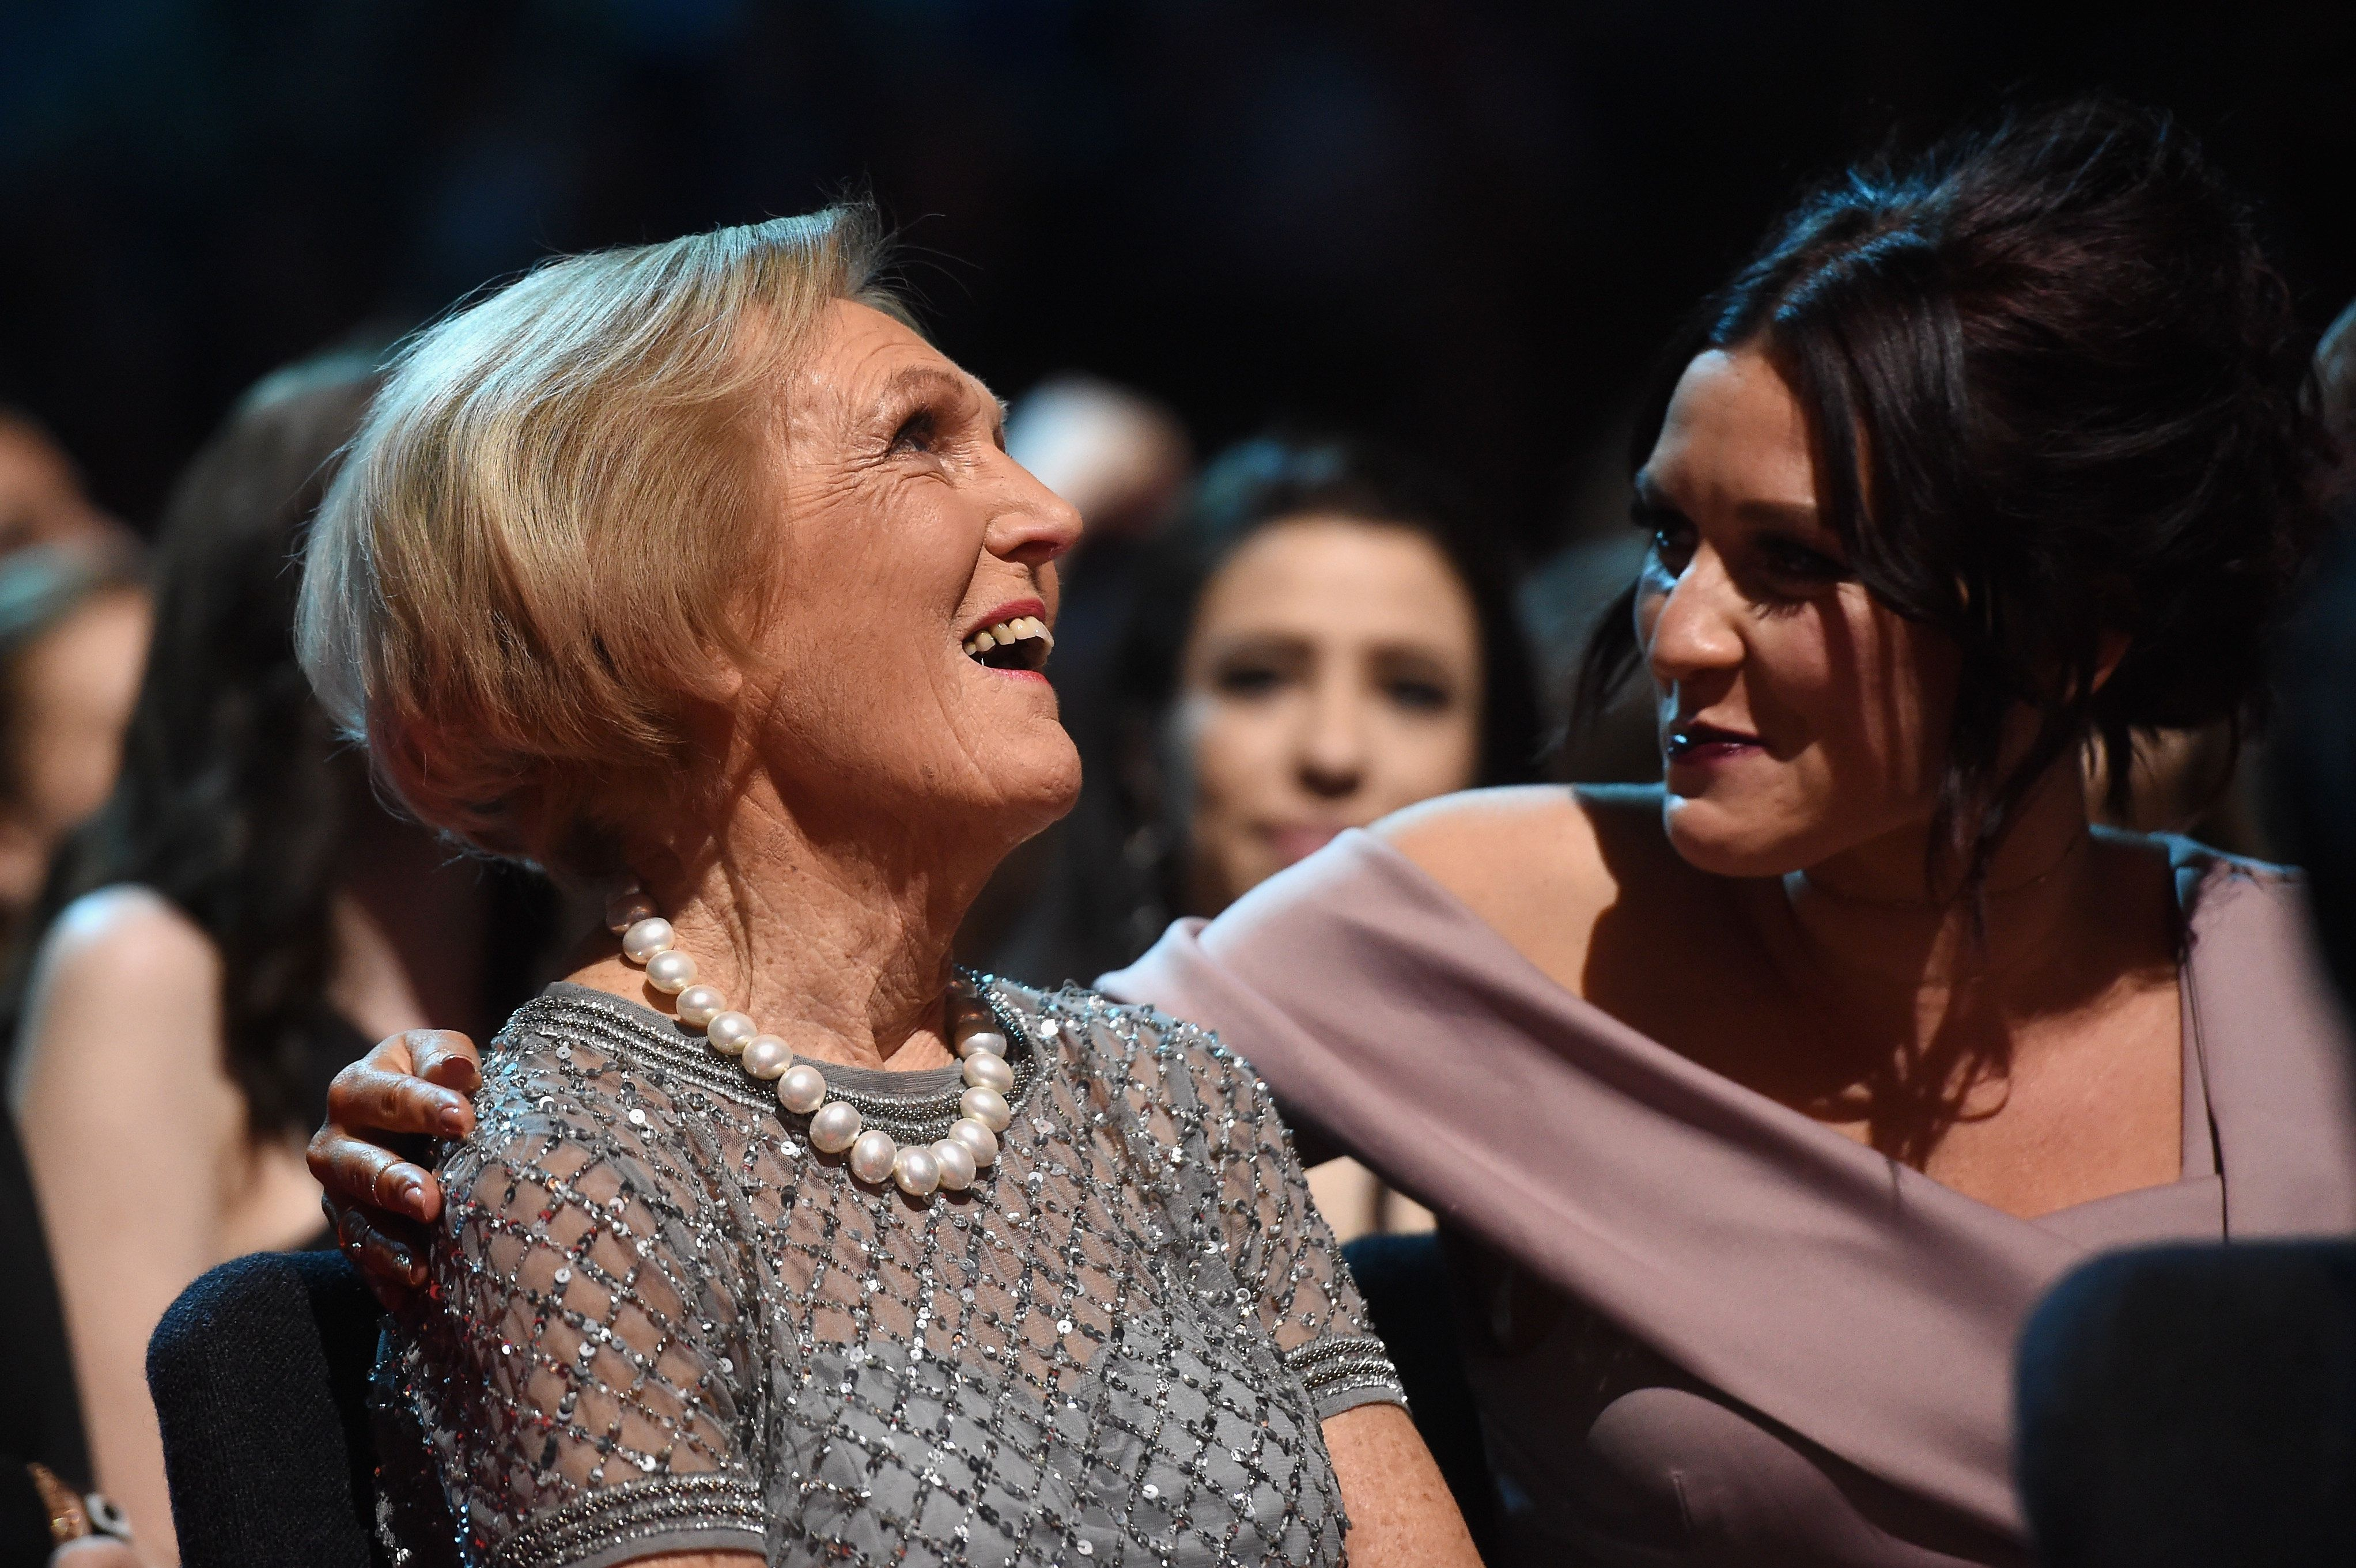 Mary Berry Shares Her Favourite 'Great British Bake Off' Winner - And It's Bad News For